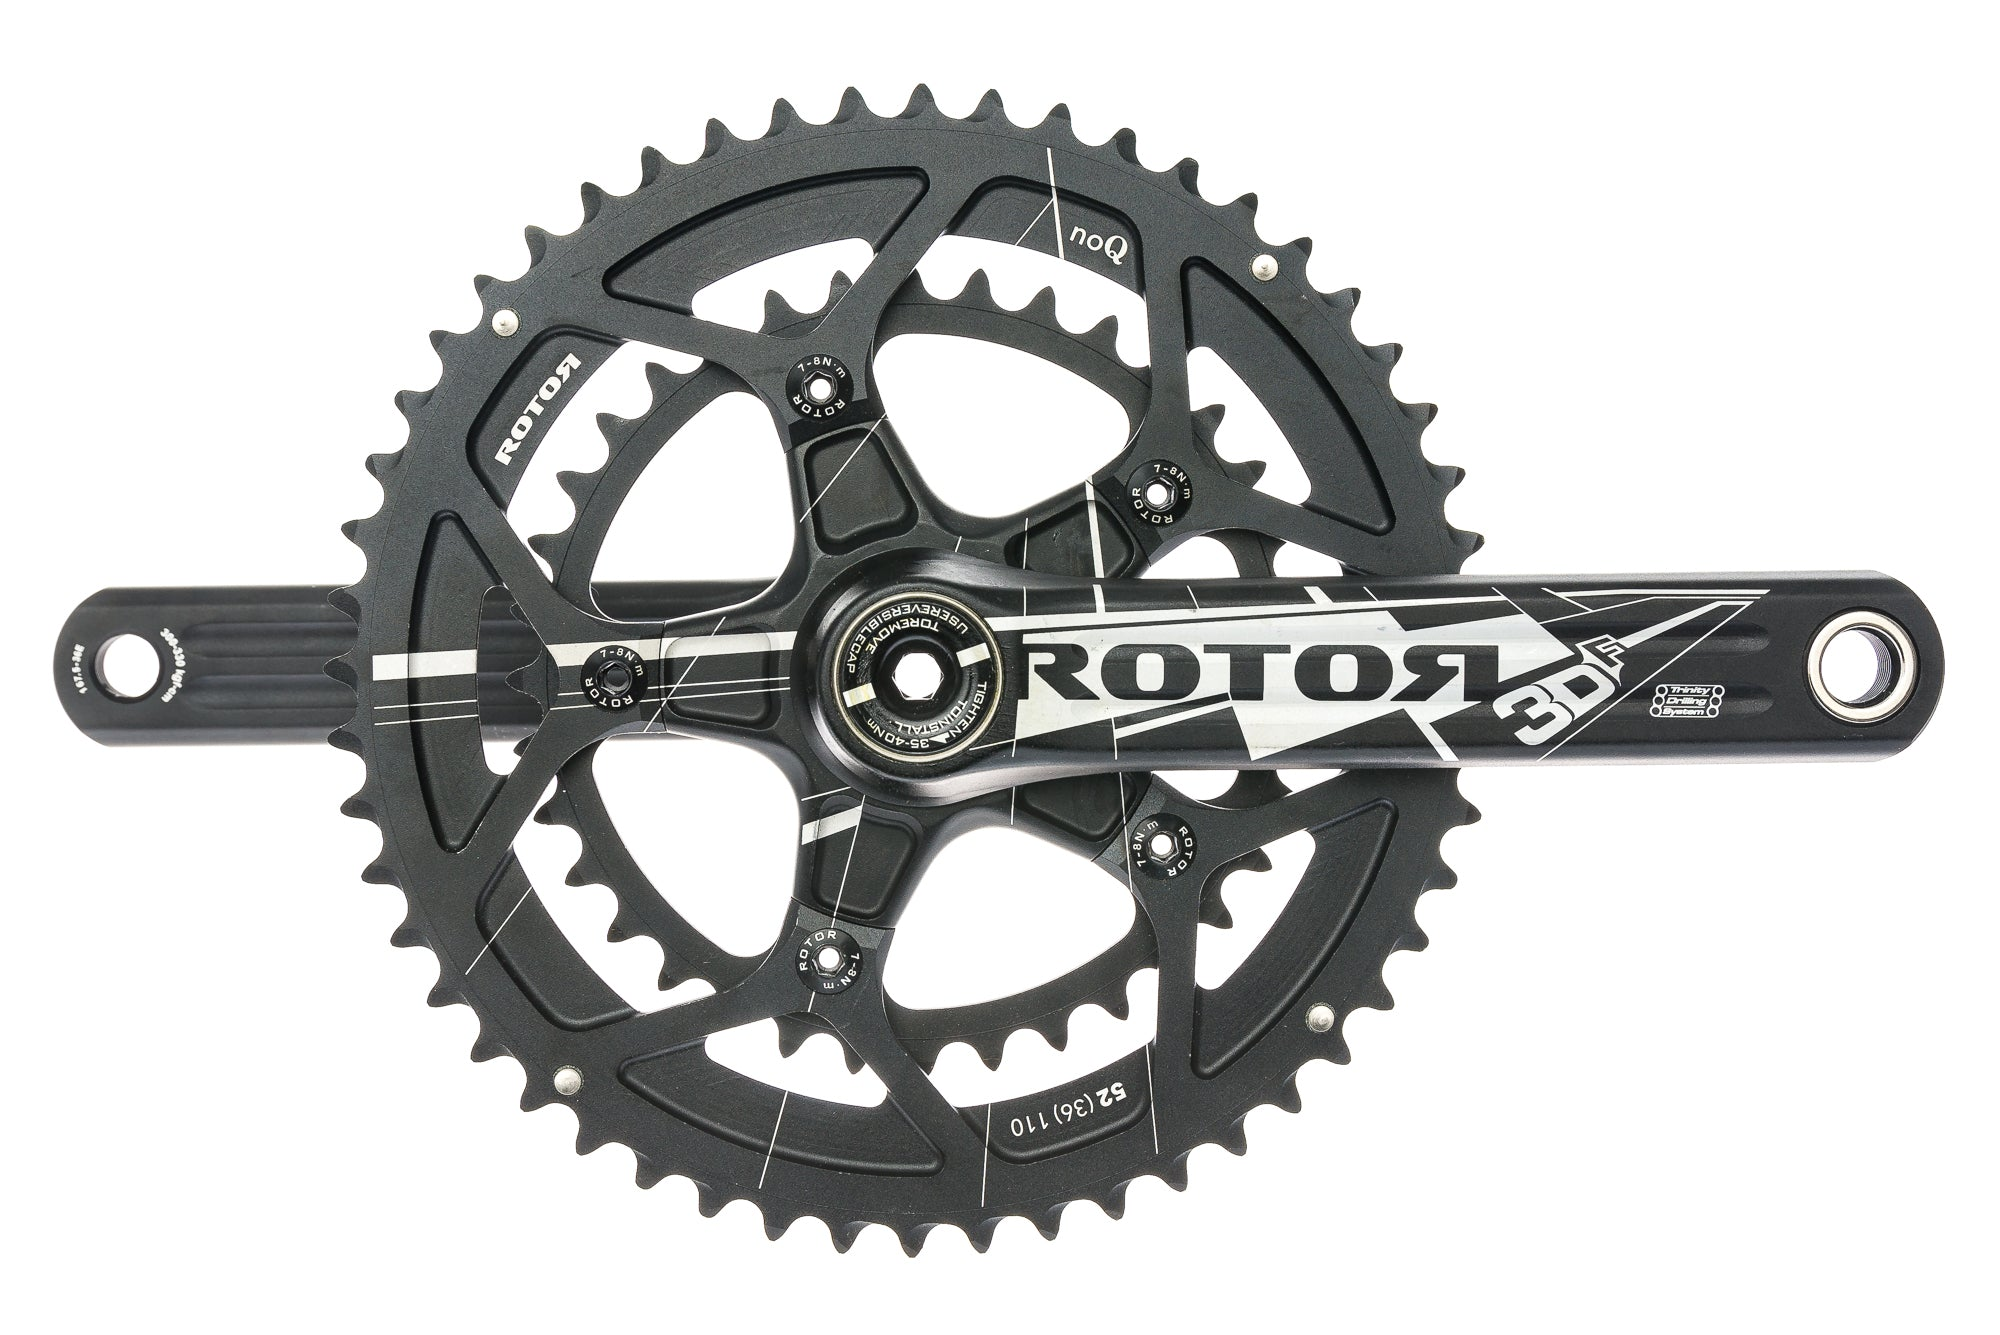 For Cervelo Rotor 3DF Forged BB Right BCD110x5 52//36T 175mm Road Crankset Black